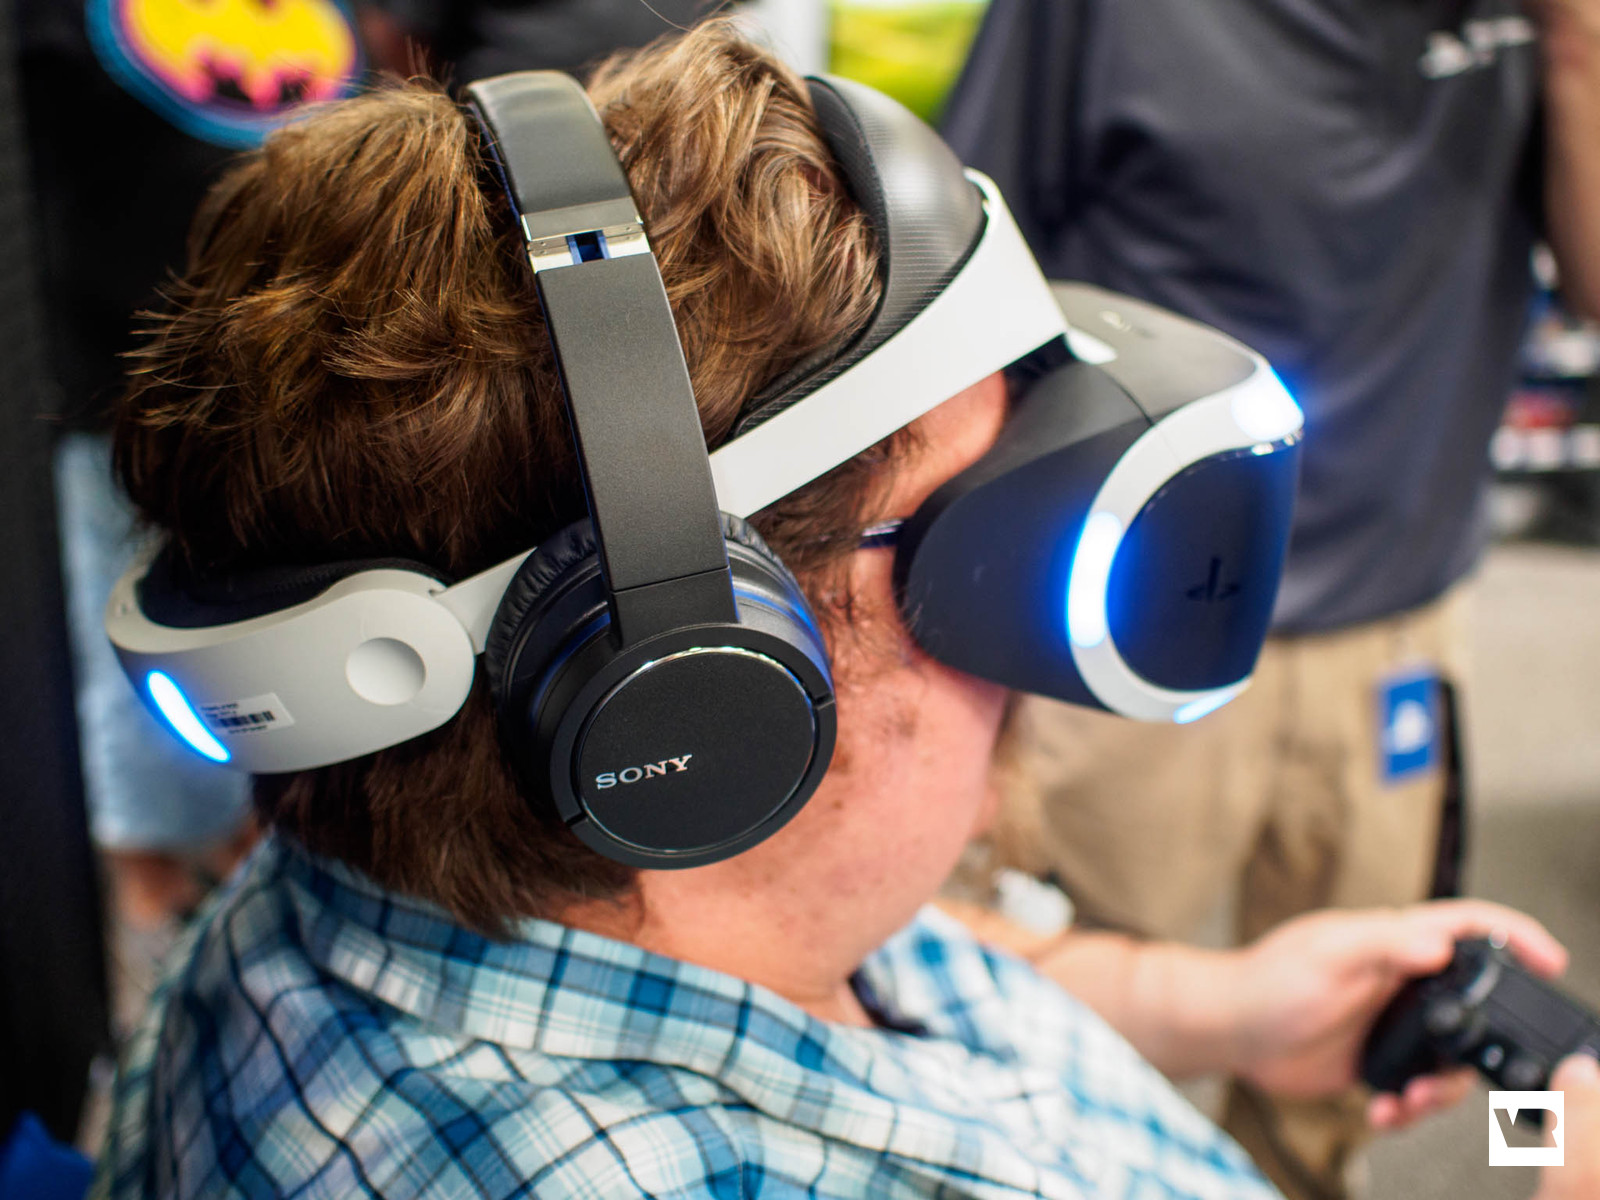 PlayStation VR headphones